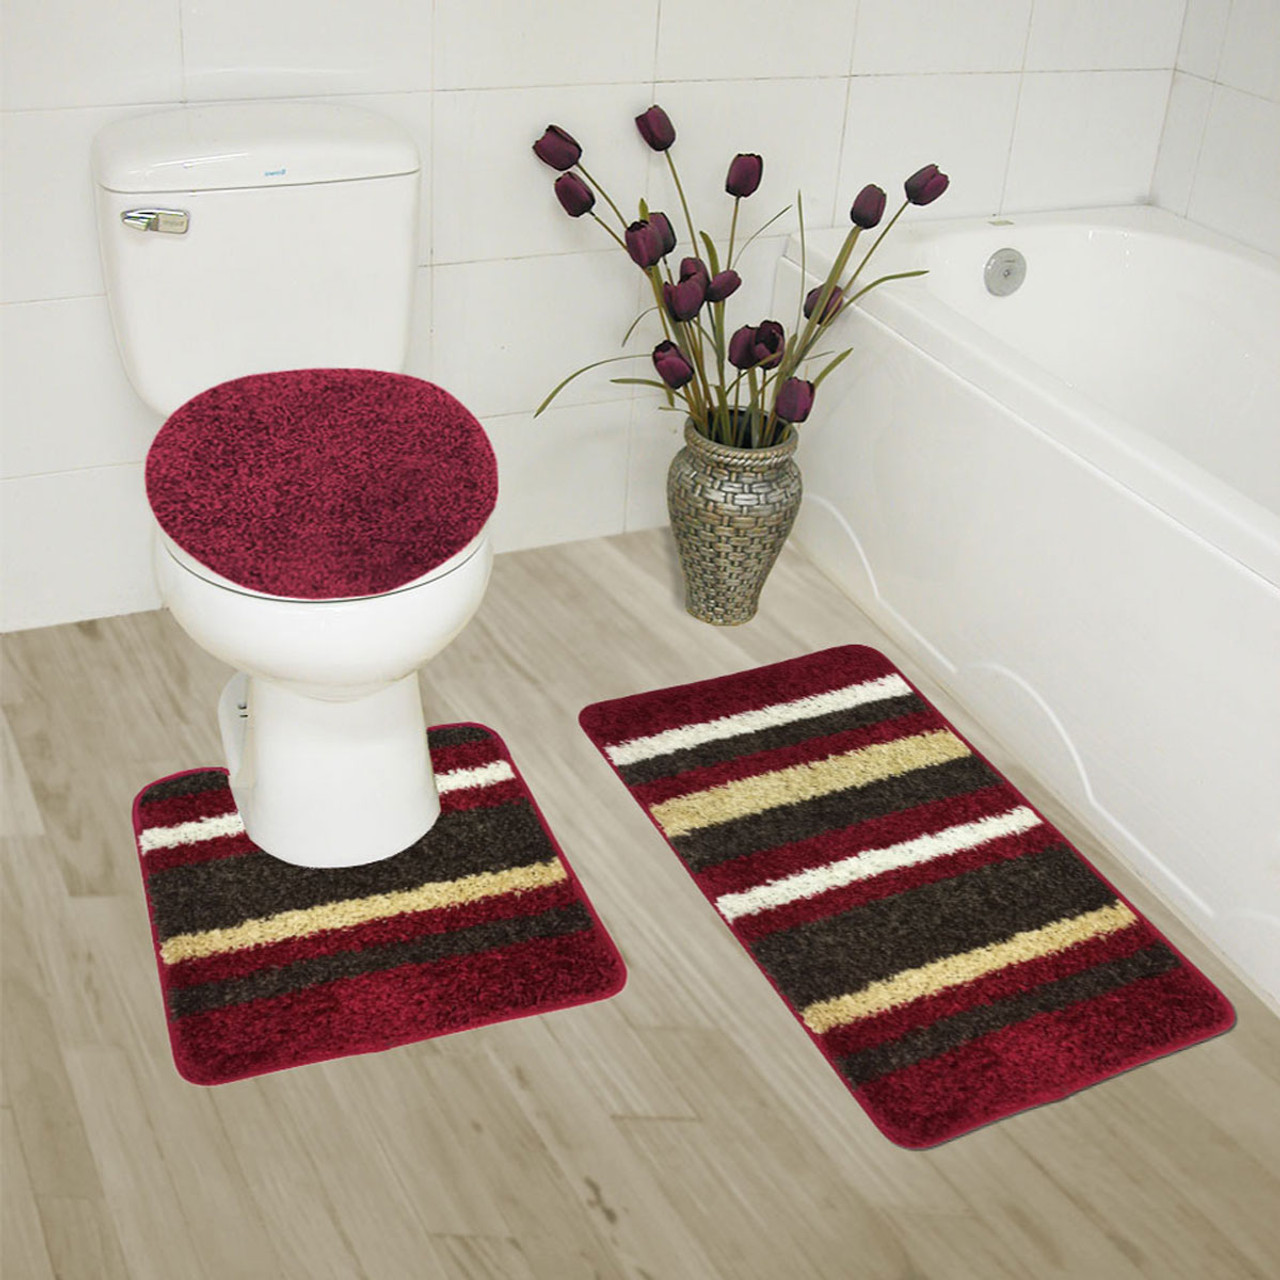 Abby 3 Piece Bathroom Rug Set, Bath Rug, Contour Rug, Lid Cover,